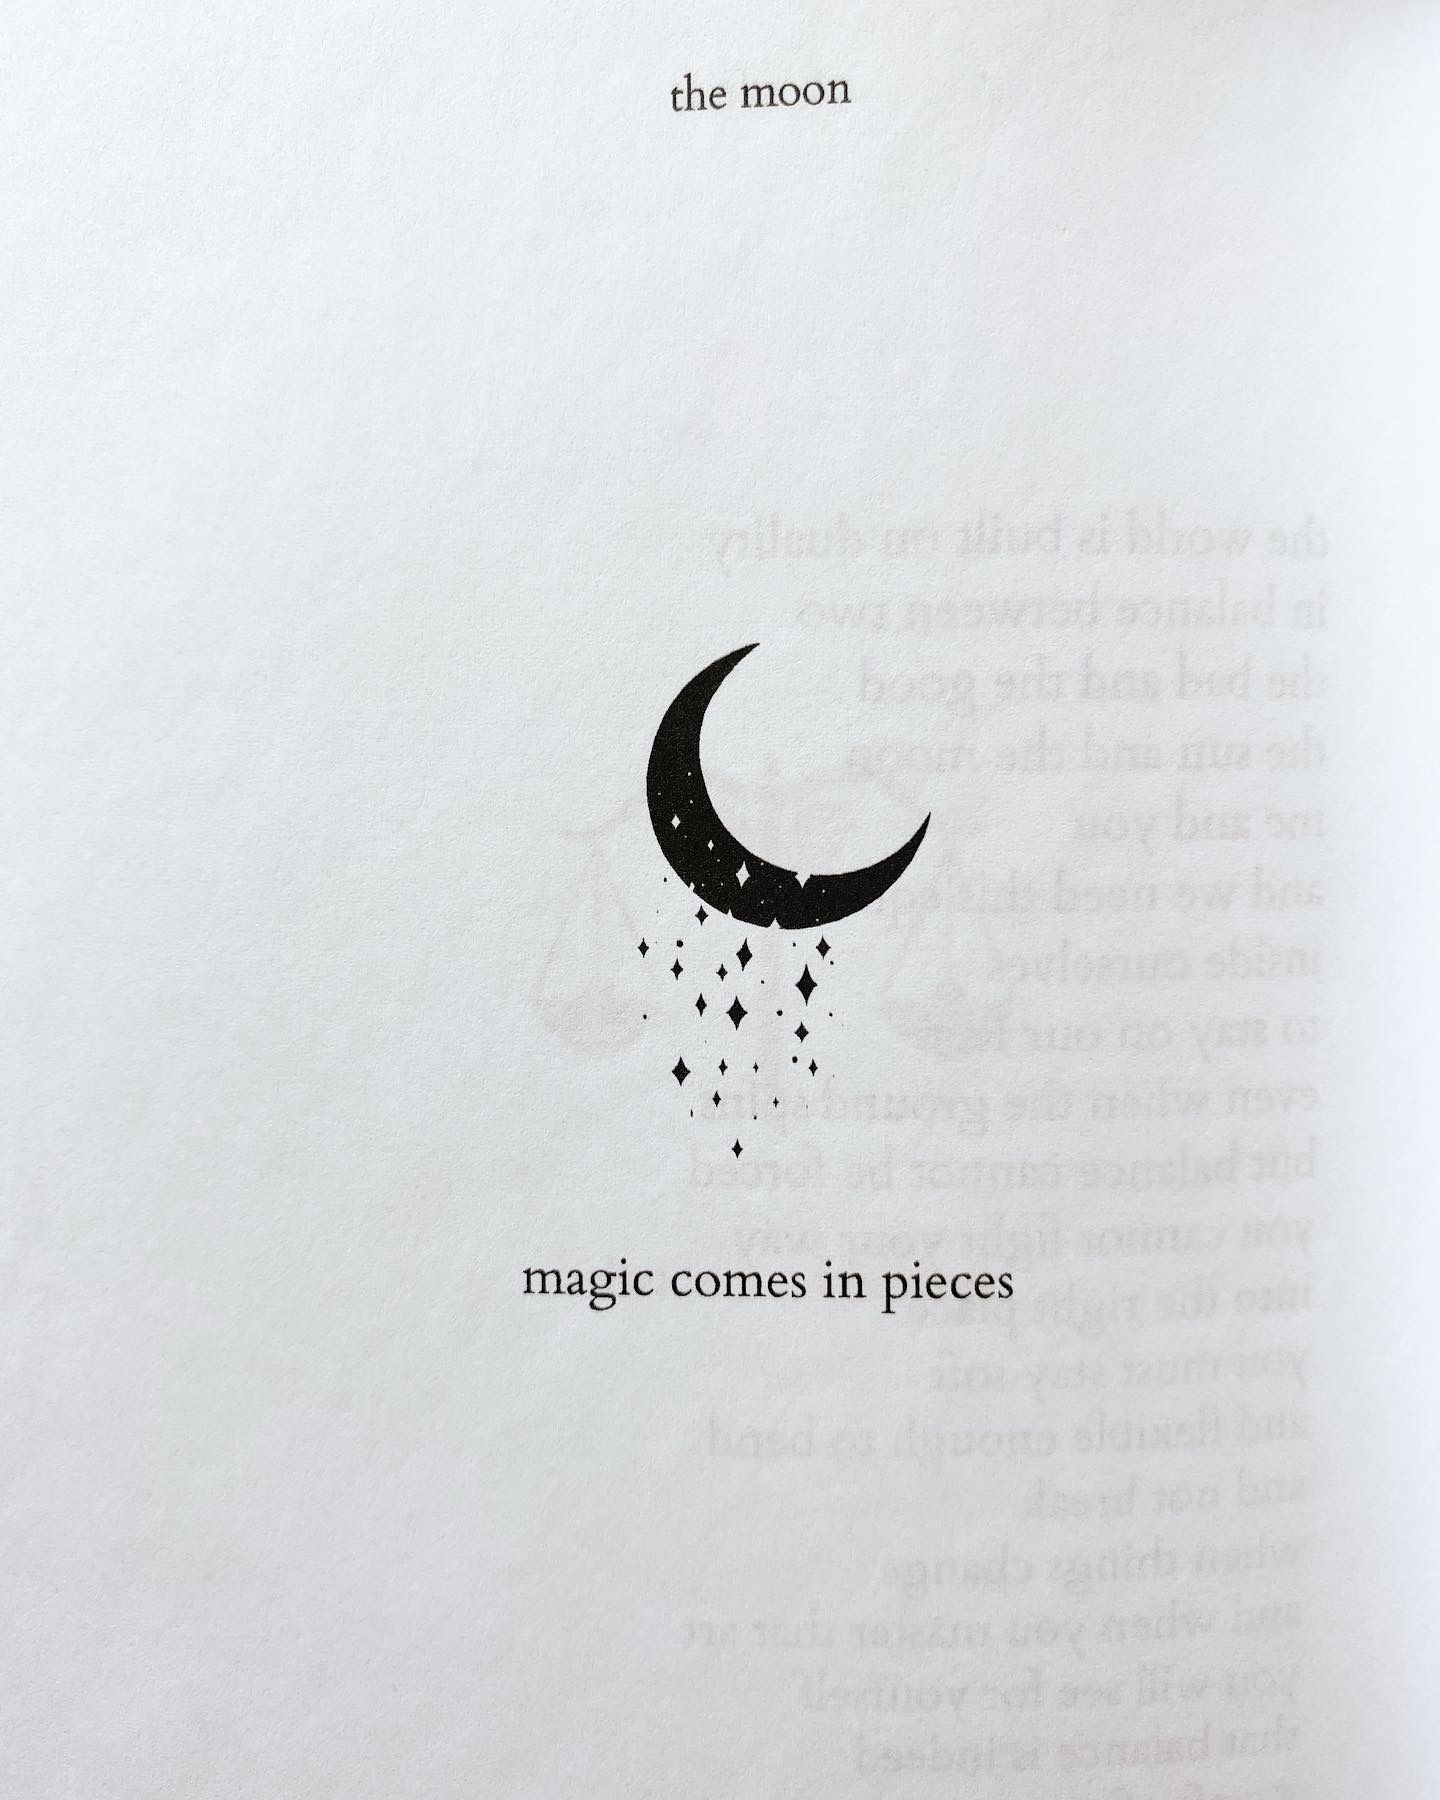 look for magic and you will find it everywhere